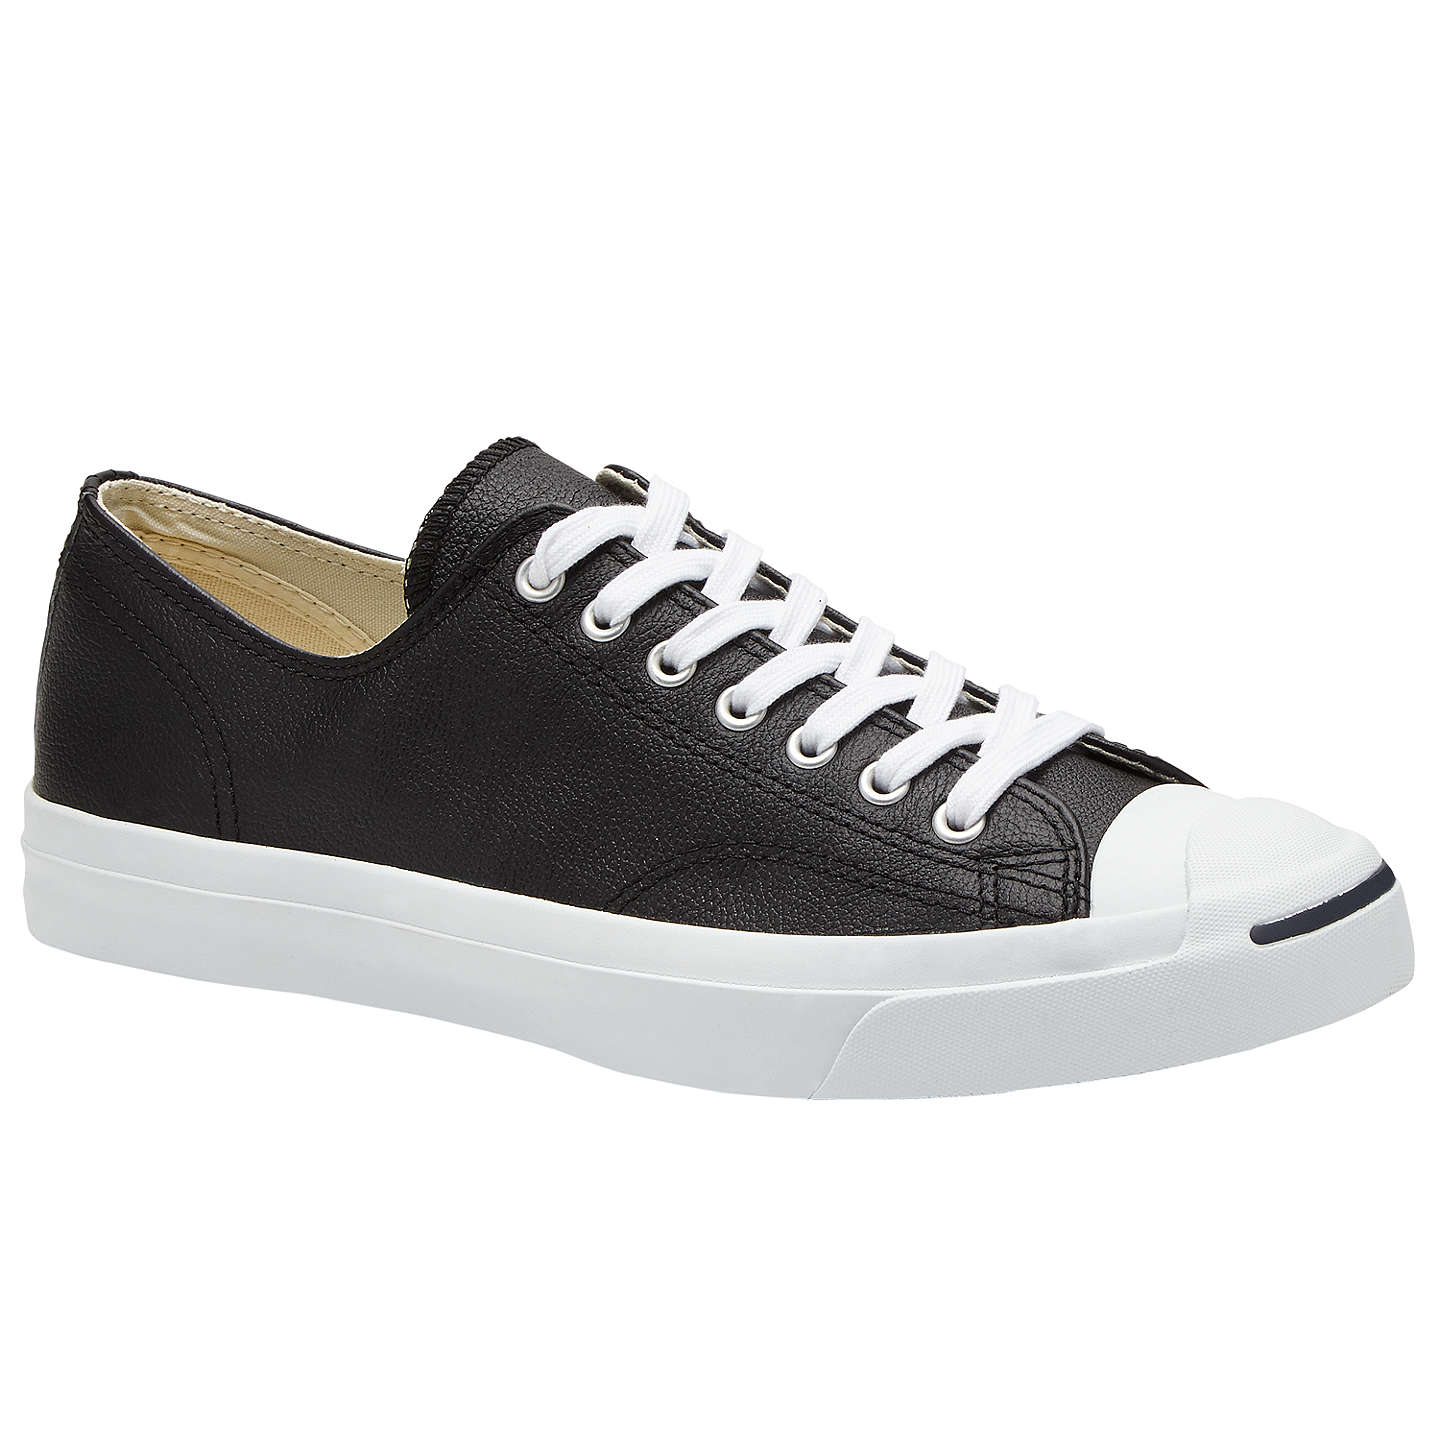 converse shoes how to lace leather spanish lace ceiling installa